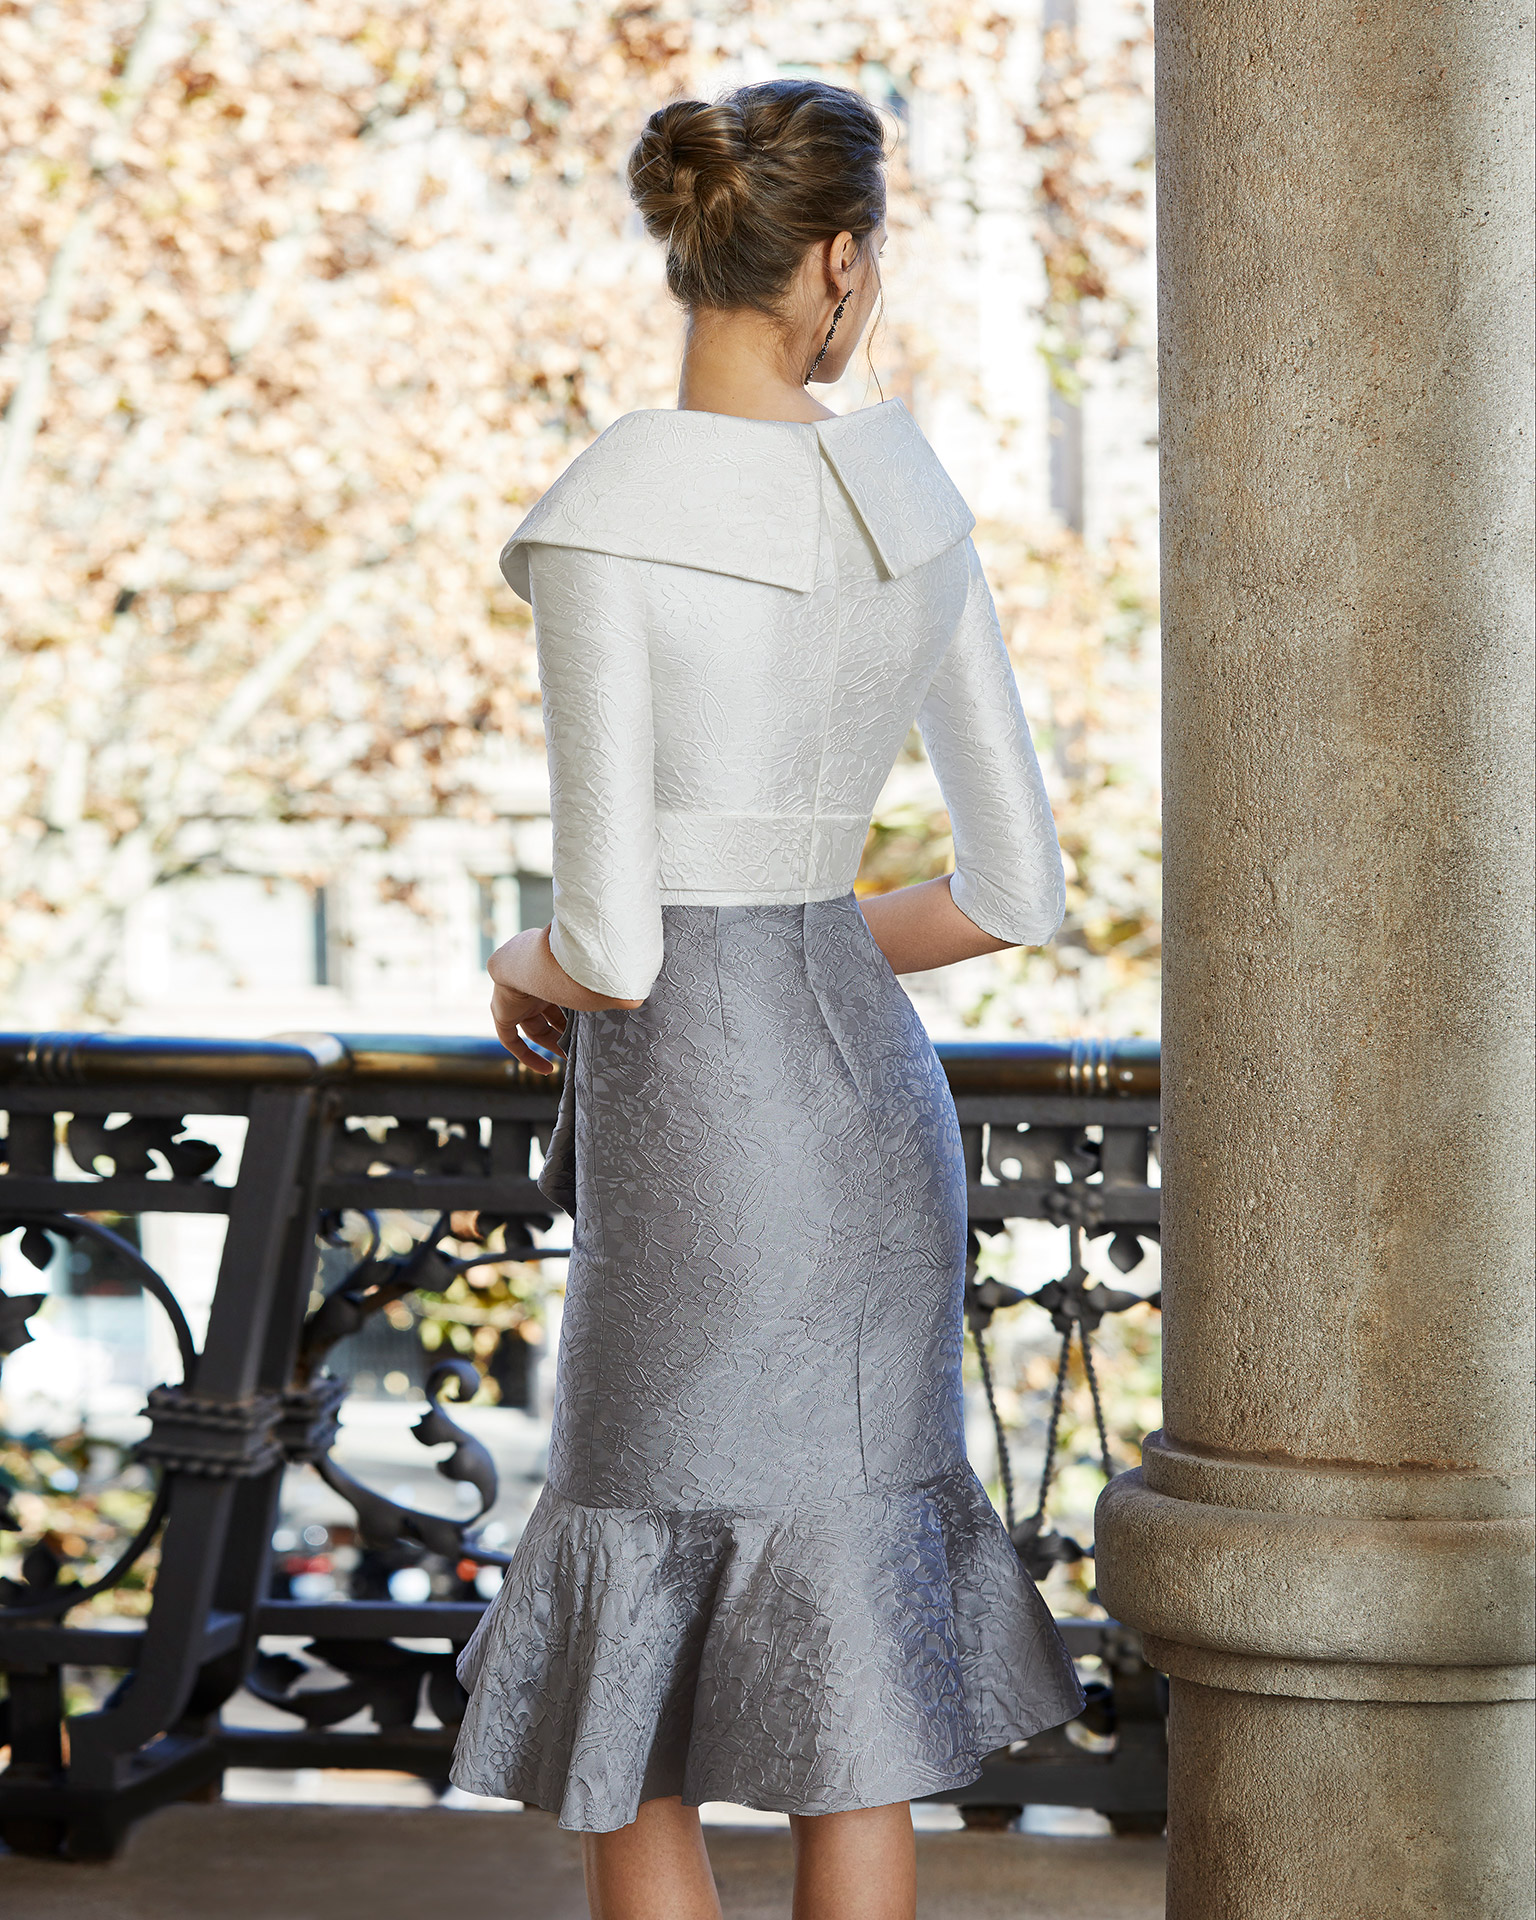 Short brocade cocktail dress with beaded brooch at the waist. V-neckline and three-quarter sleeves. 2020 COUTURE CLUB Collection.